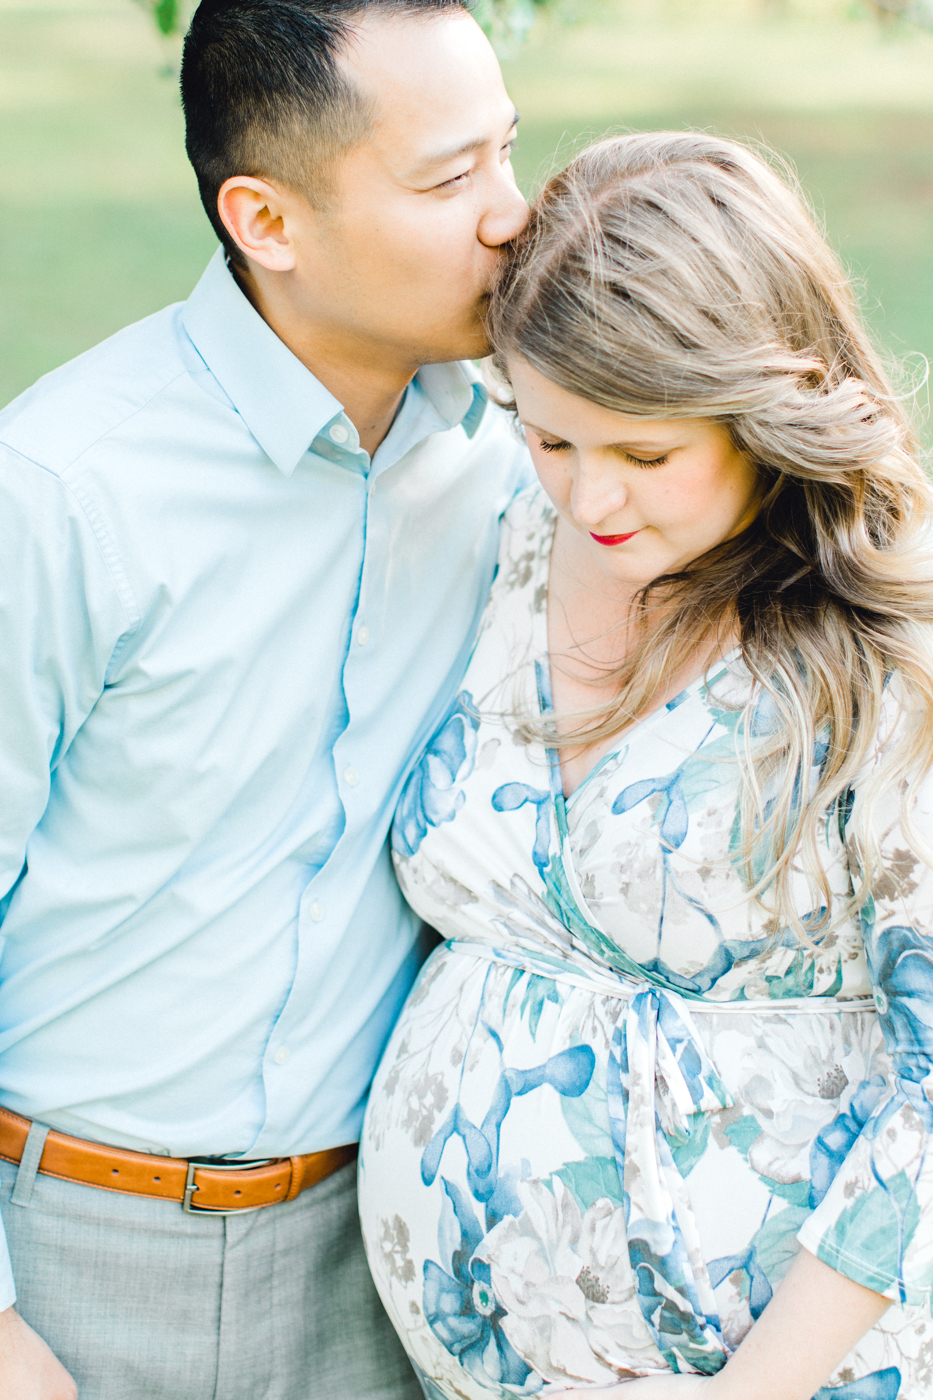 four corners photography atlanta engagement photographer georgia photographer fine art film photographer atlanta natural light photographer newborn photographer family photographer fine art maternity photographer-4.jpg